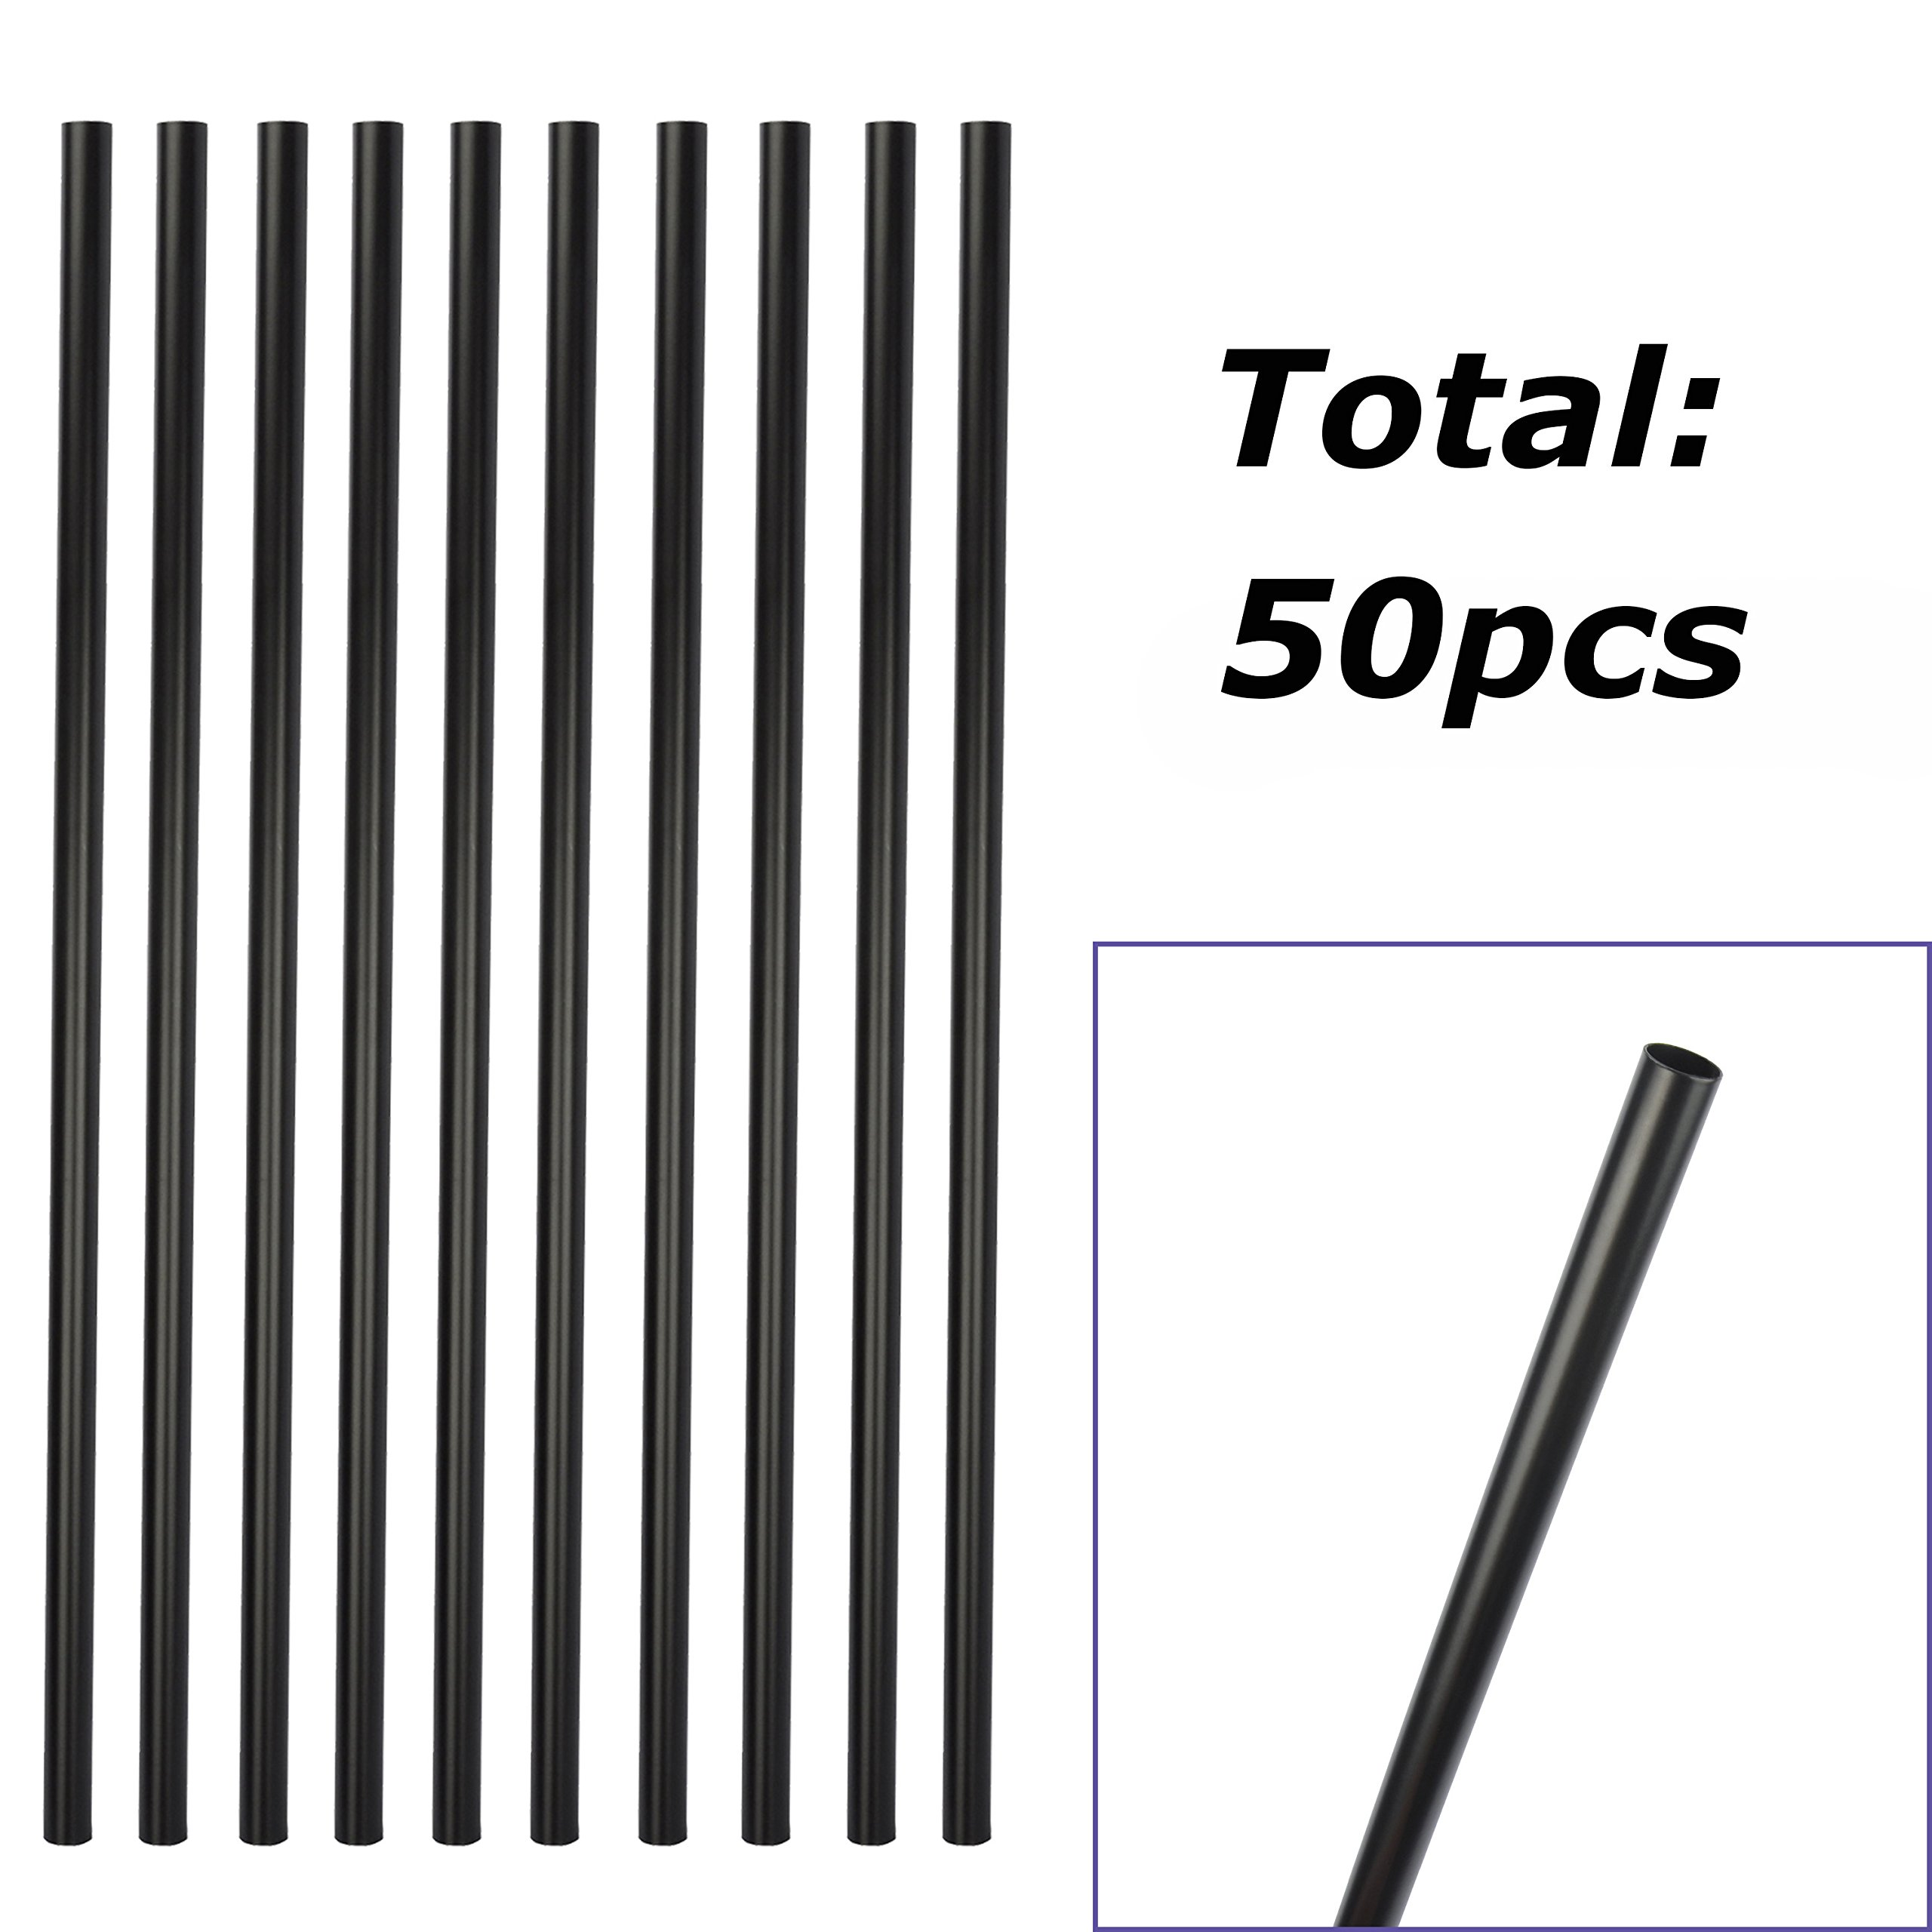 Myard 26'' Classic Hollow Round Iron Balusters 50-Pack for Deck Railing/Porch (Matte Black) by Myard (Image #2)